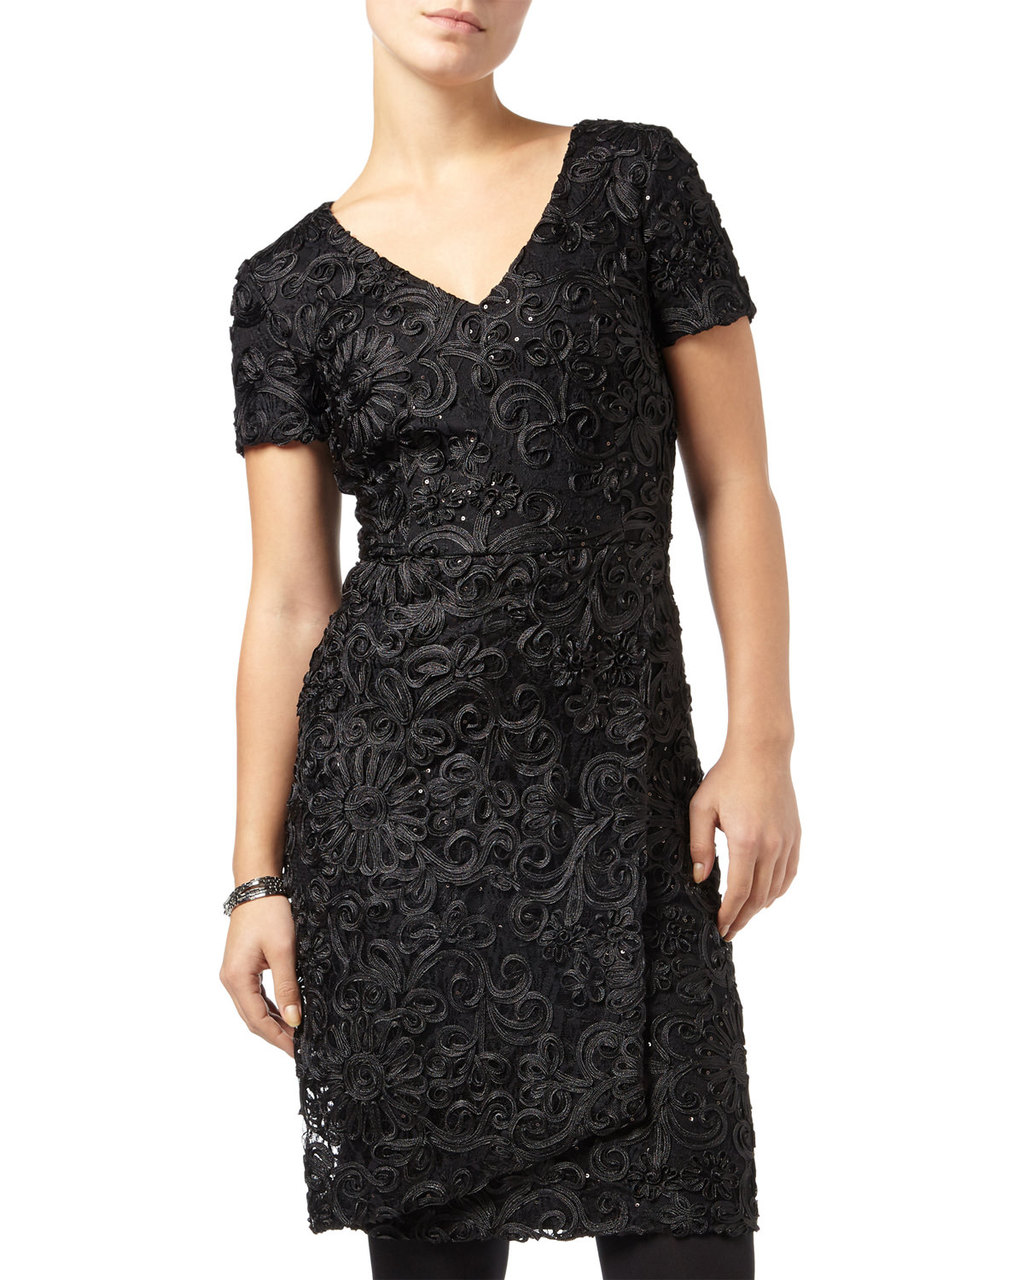 Demi Tapework Sequin Dress - style: shift; neckline: v-neck; predominant colour: black; occasions: evening, occasion; length: just above the knee; fit: body skimming; fibres: polyester/polyamide - 100%; sleeve length: short sleeve; sleeve style: standard; pattern type: fabric; pattern size: standard; pattern: patterned/print; texture group: woven light midweight; embellishment: sequins; season: a/w 2015; wardrobe: event